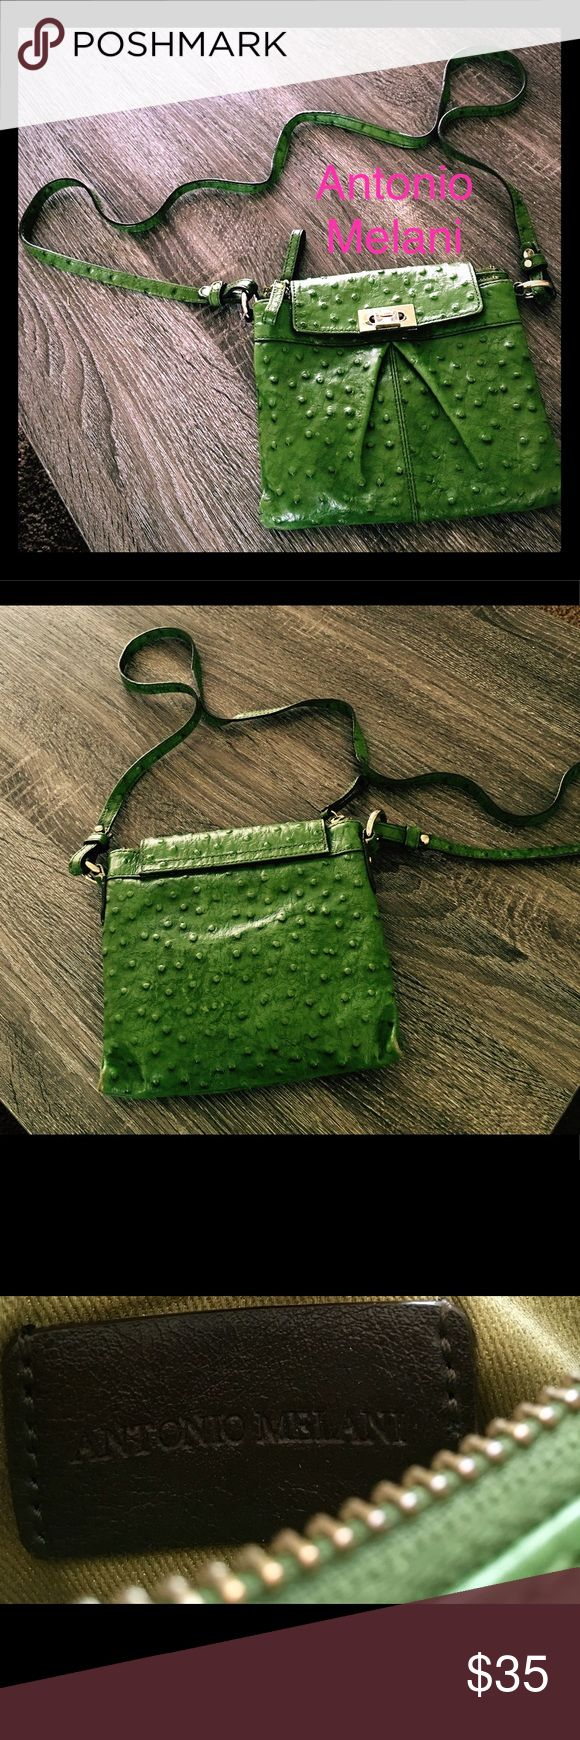 Antonio Melani Unique Green Leather Cross-Body Antonio Melani offered a mix of style, sophistication, designer elegance, and a pop of fun flair, when this cross-body was made. This purse is in GREAT condition, preloved with signs of minor wear (as pictured), but super cute! $35 OBO Please feel free to check out my other items and I offer bundle pricing! #AntonioMelani #Discount #Bundle #Cheap #Gift #Deal #Gift #Kotas ANTONIO MELANI Bags Crossbody Bags